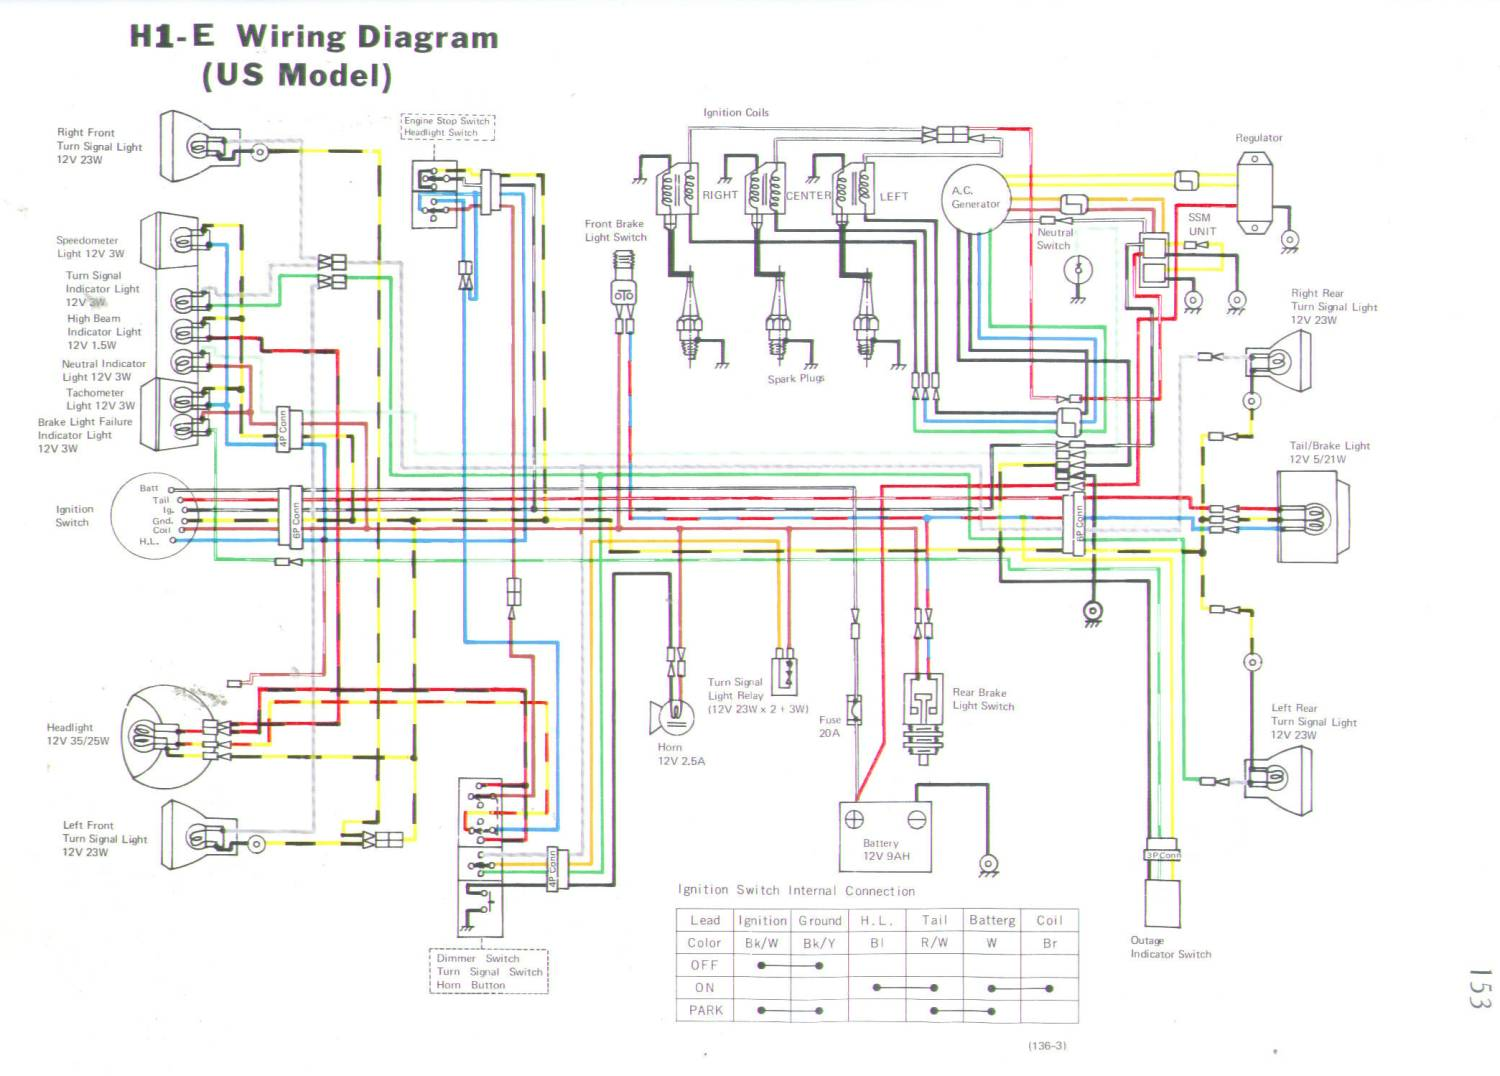 H1E kawasaki s2 wiring diagram kawasaki wiring diagrams instruction kawasaki wiring diagram at gsmx.co